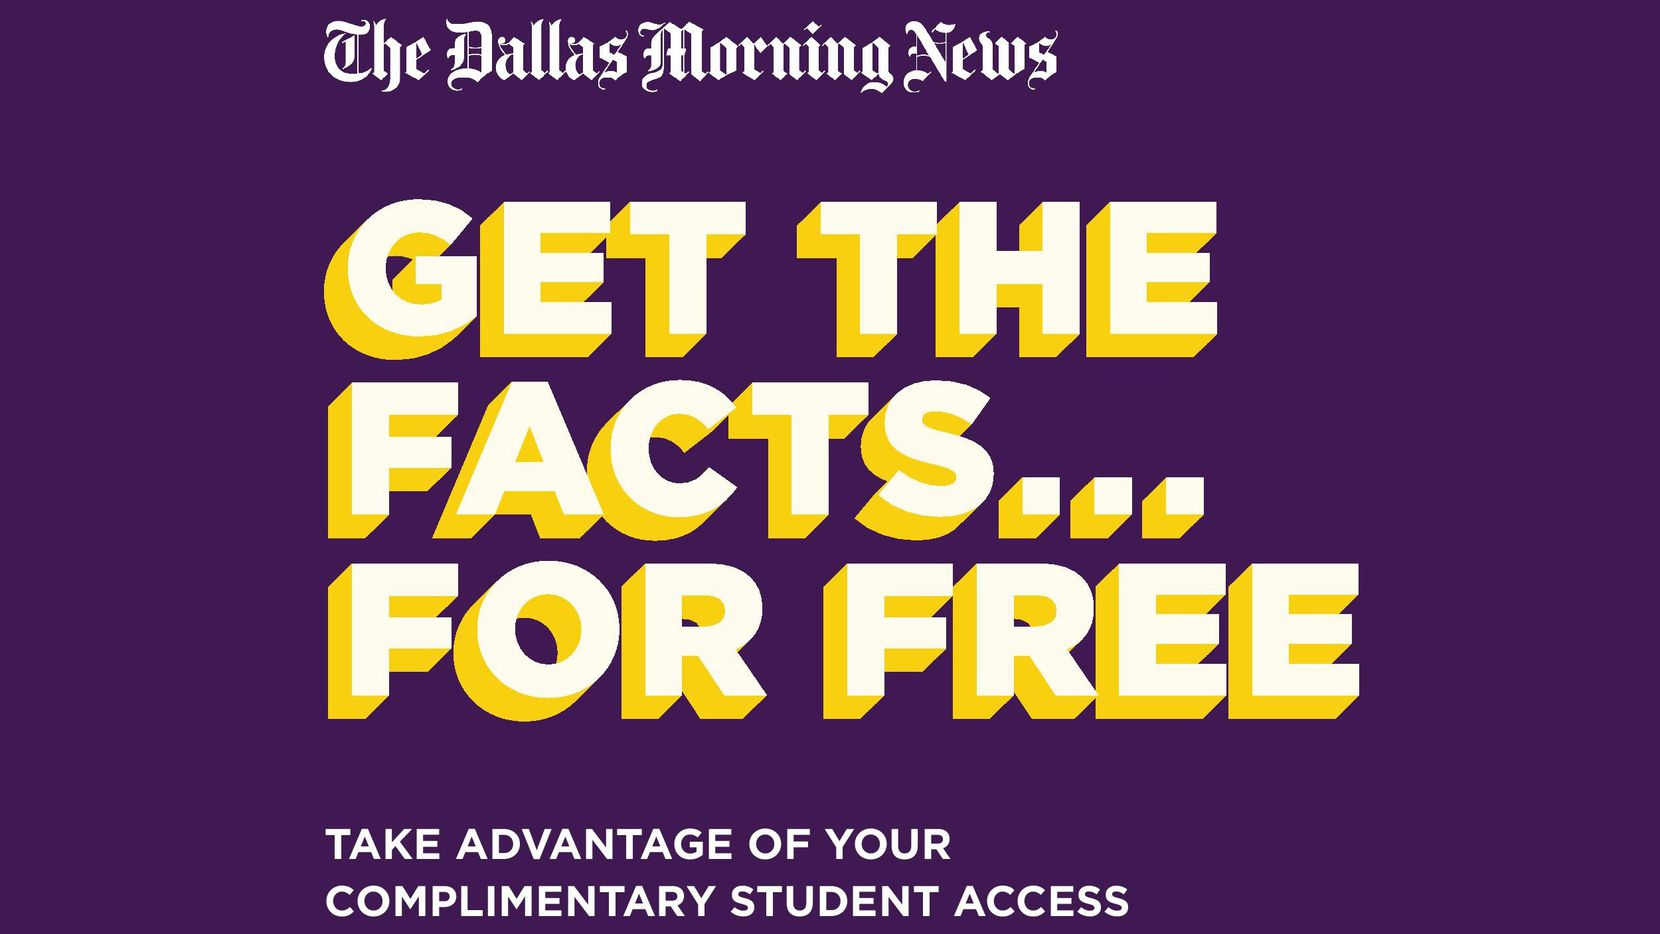 Paul Quinn College students and faculty can take advantage of free access to The Dallas Morning News.